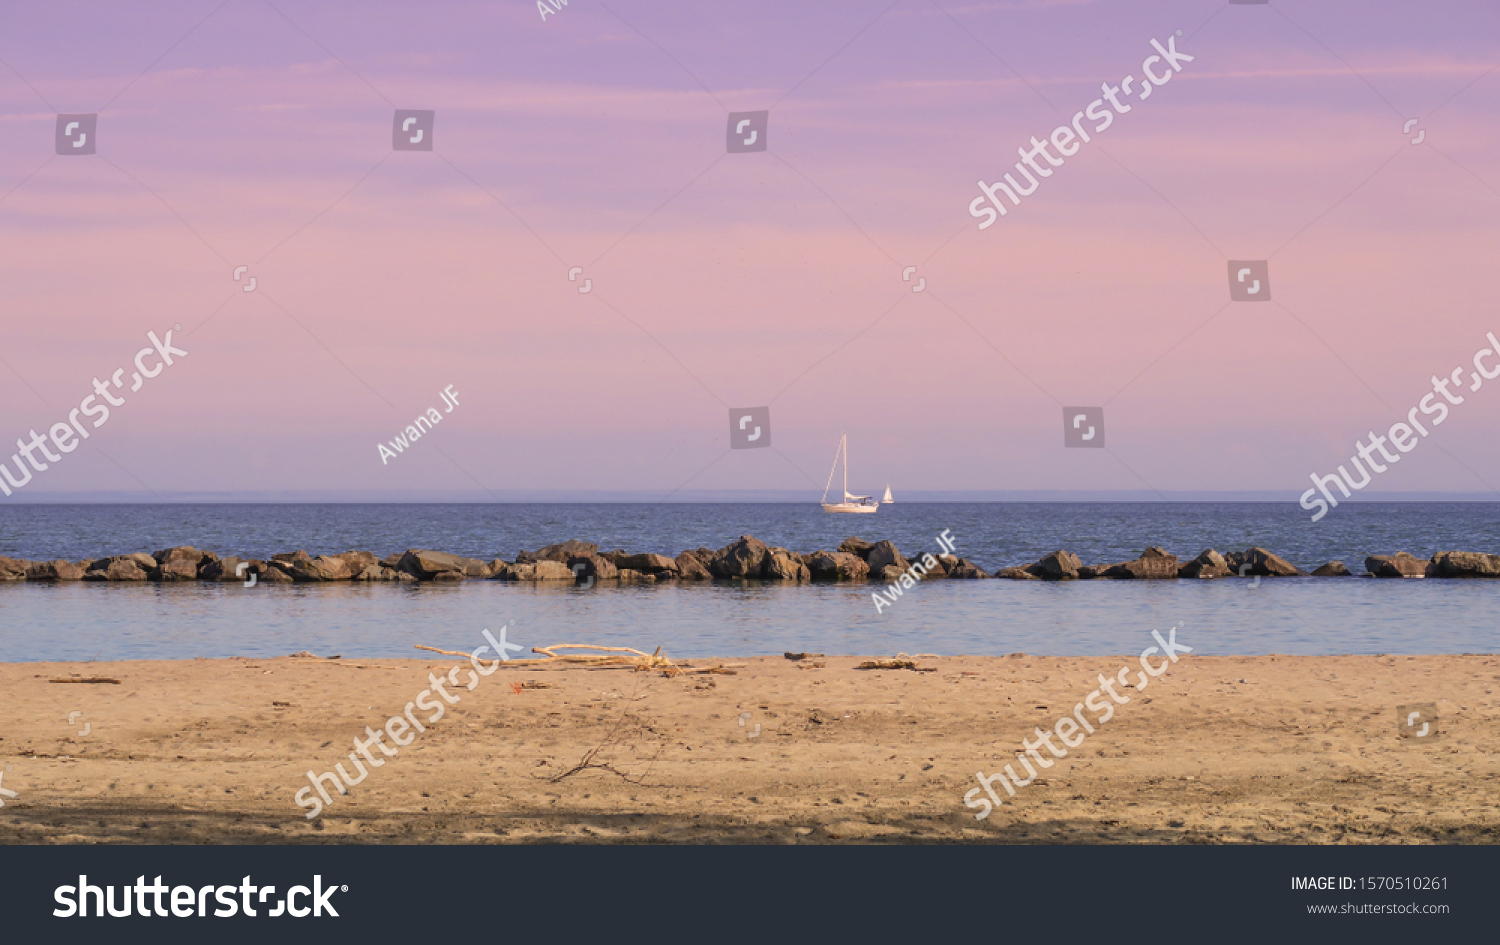 stock-photo-sand-beach-with-a-boat-in-th